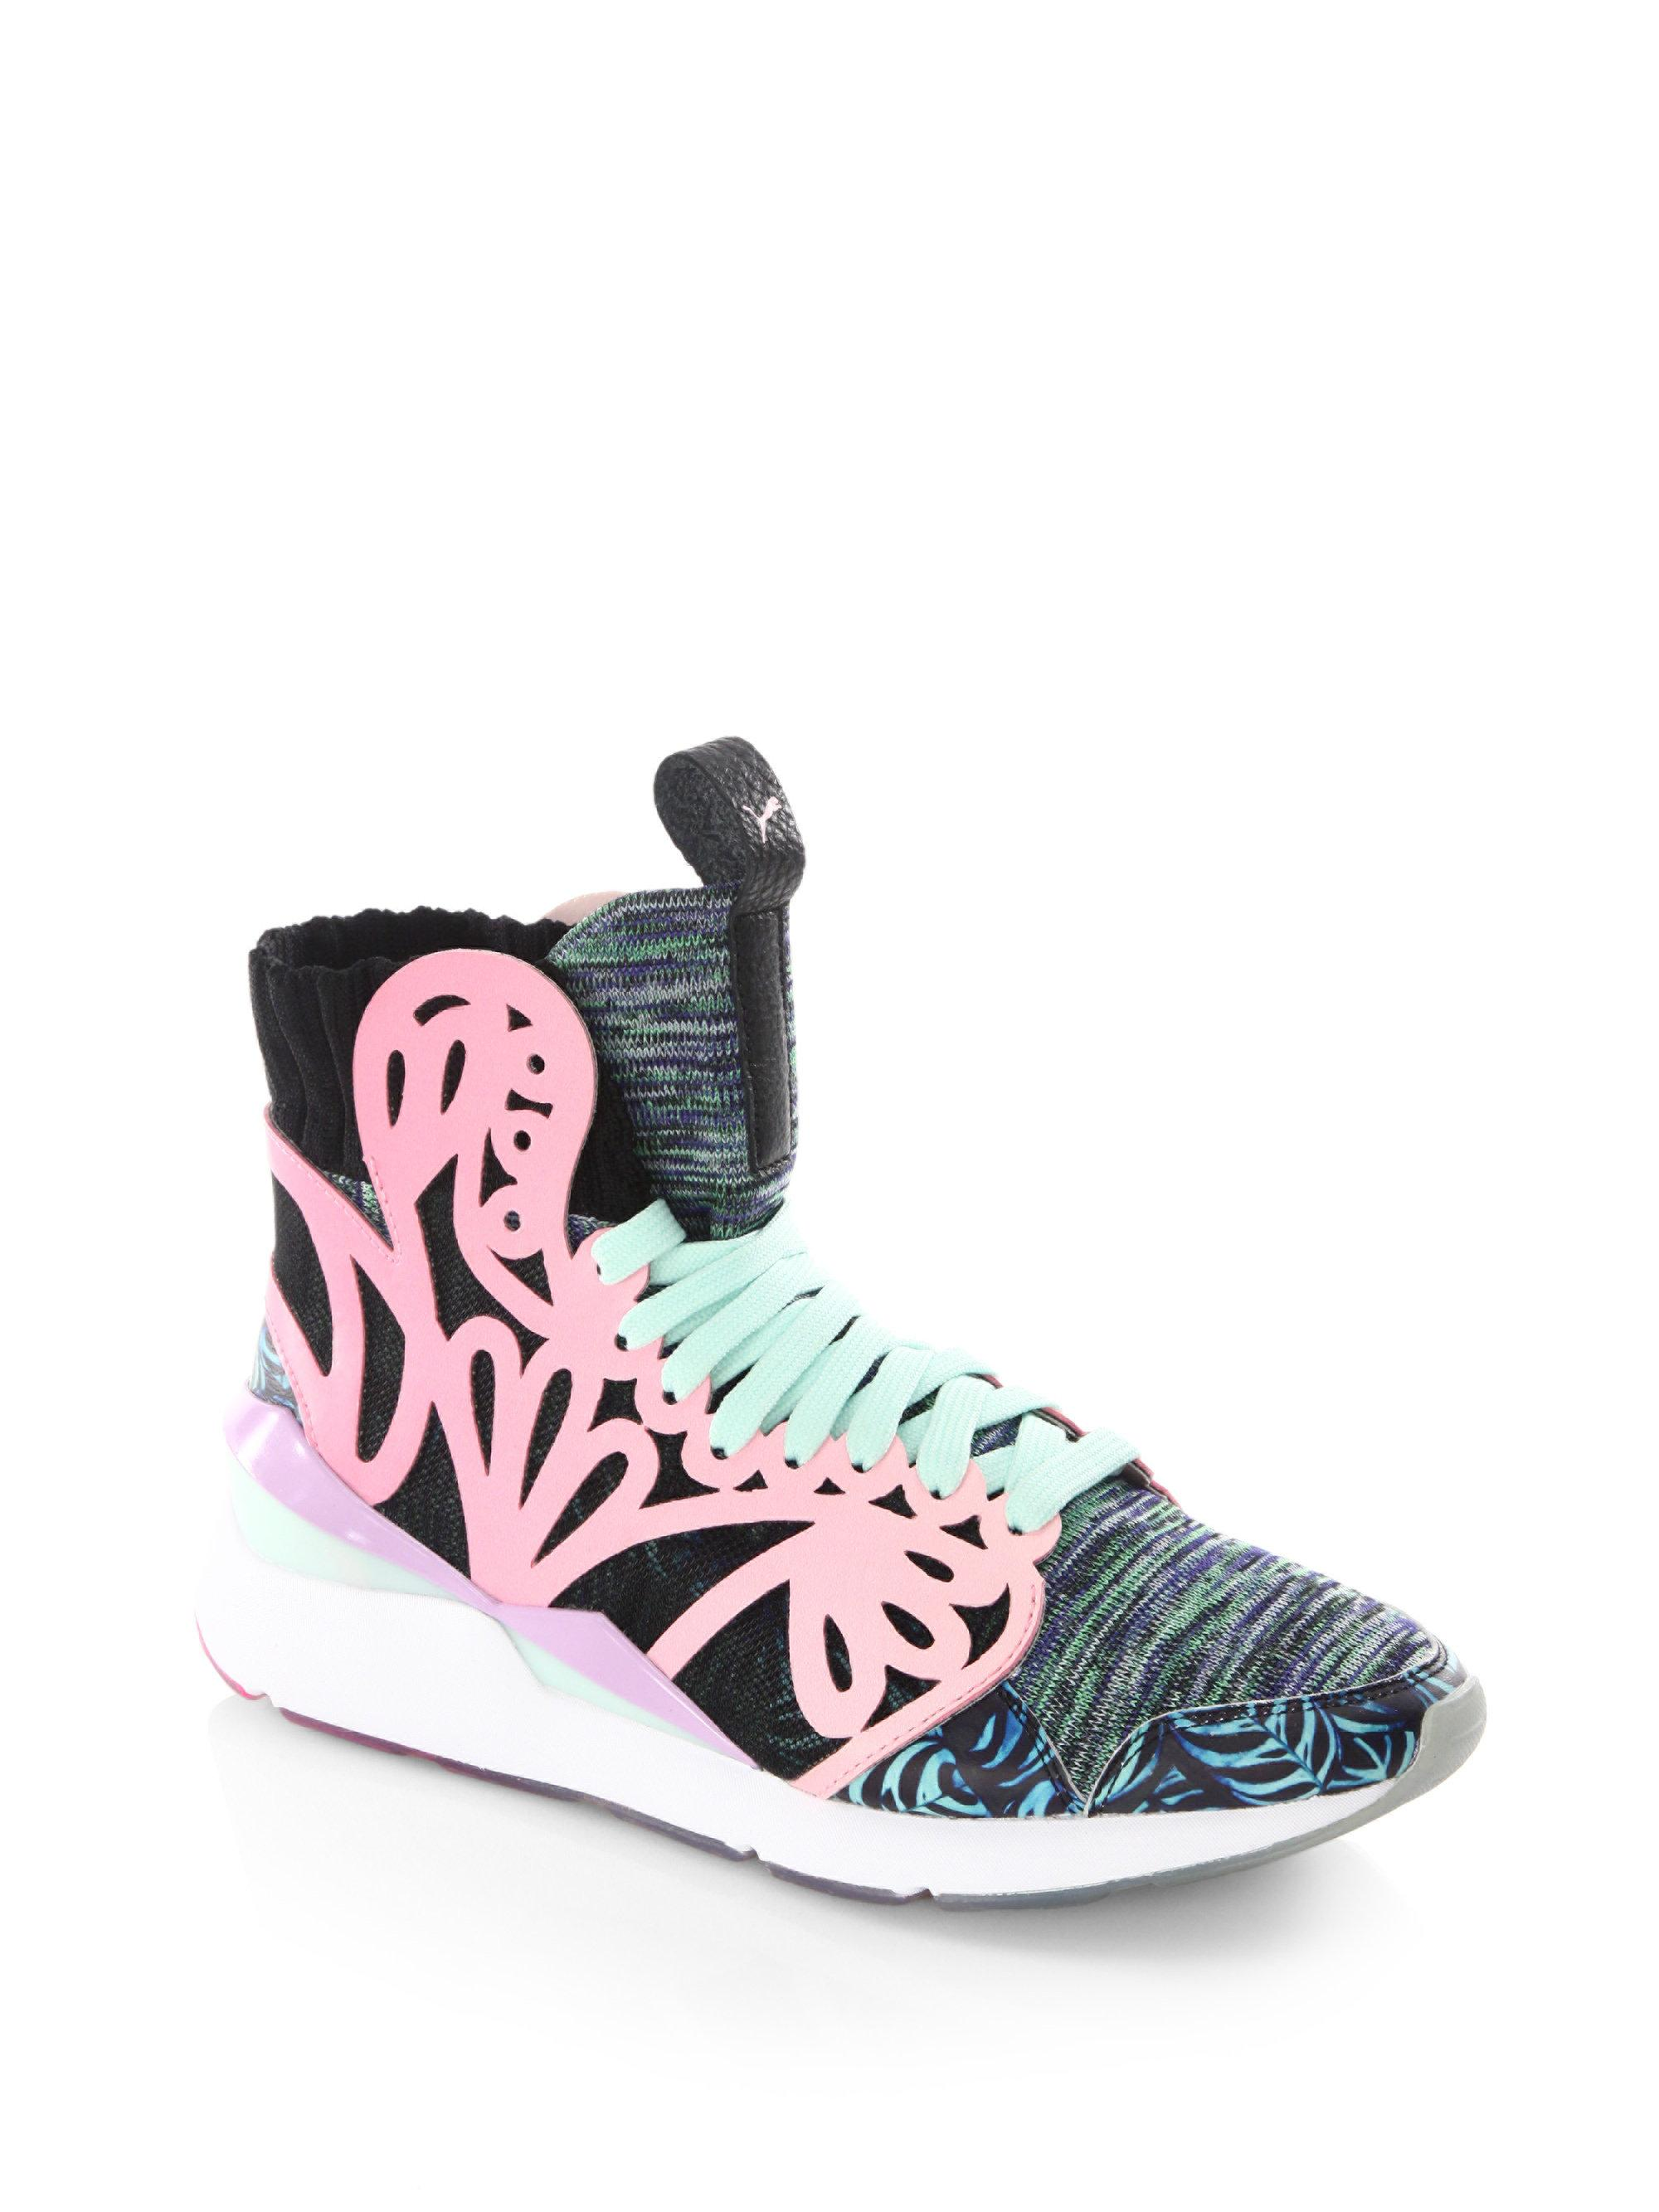 Puma Pearl Cage Low-Top Sneakers tyoLGLjqo